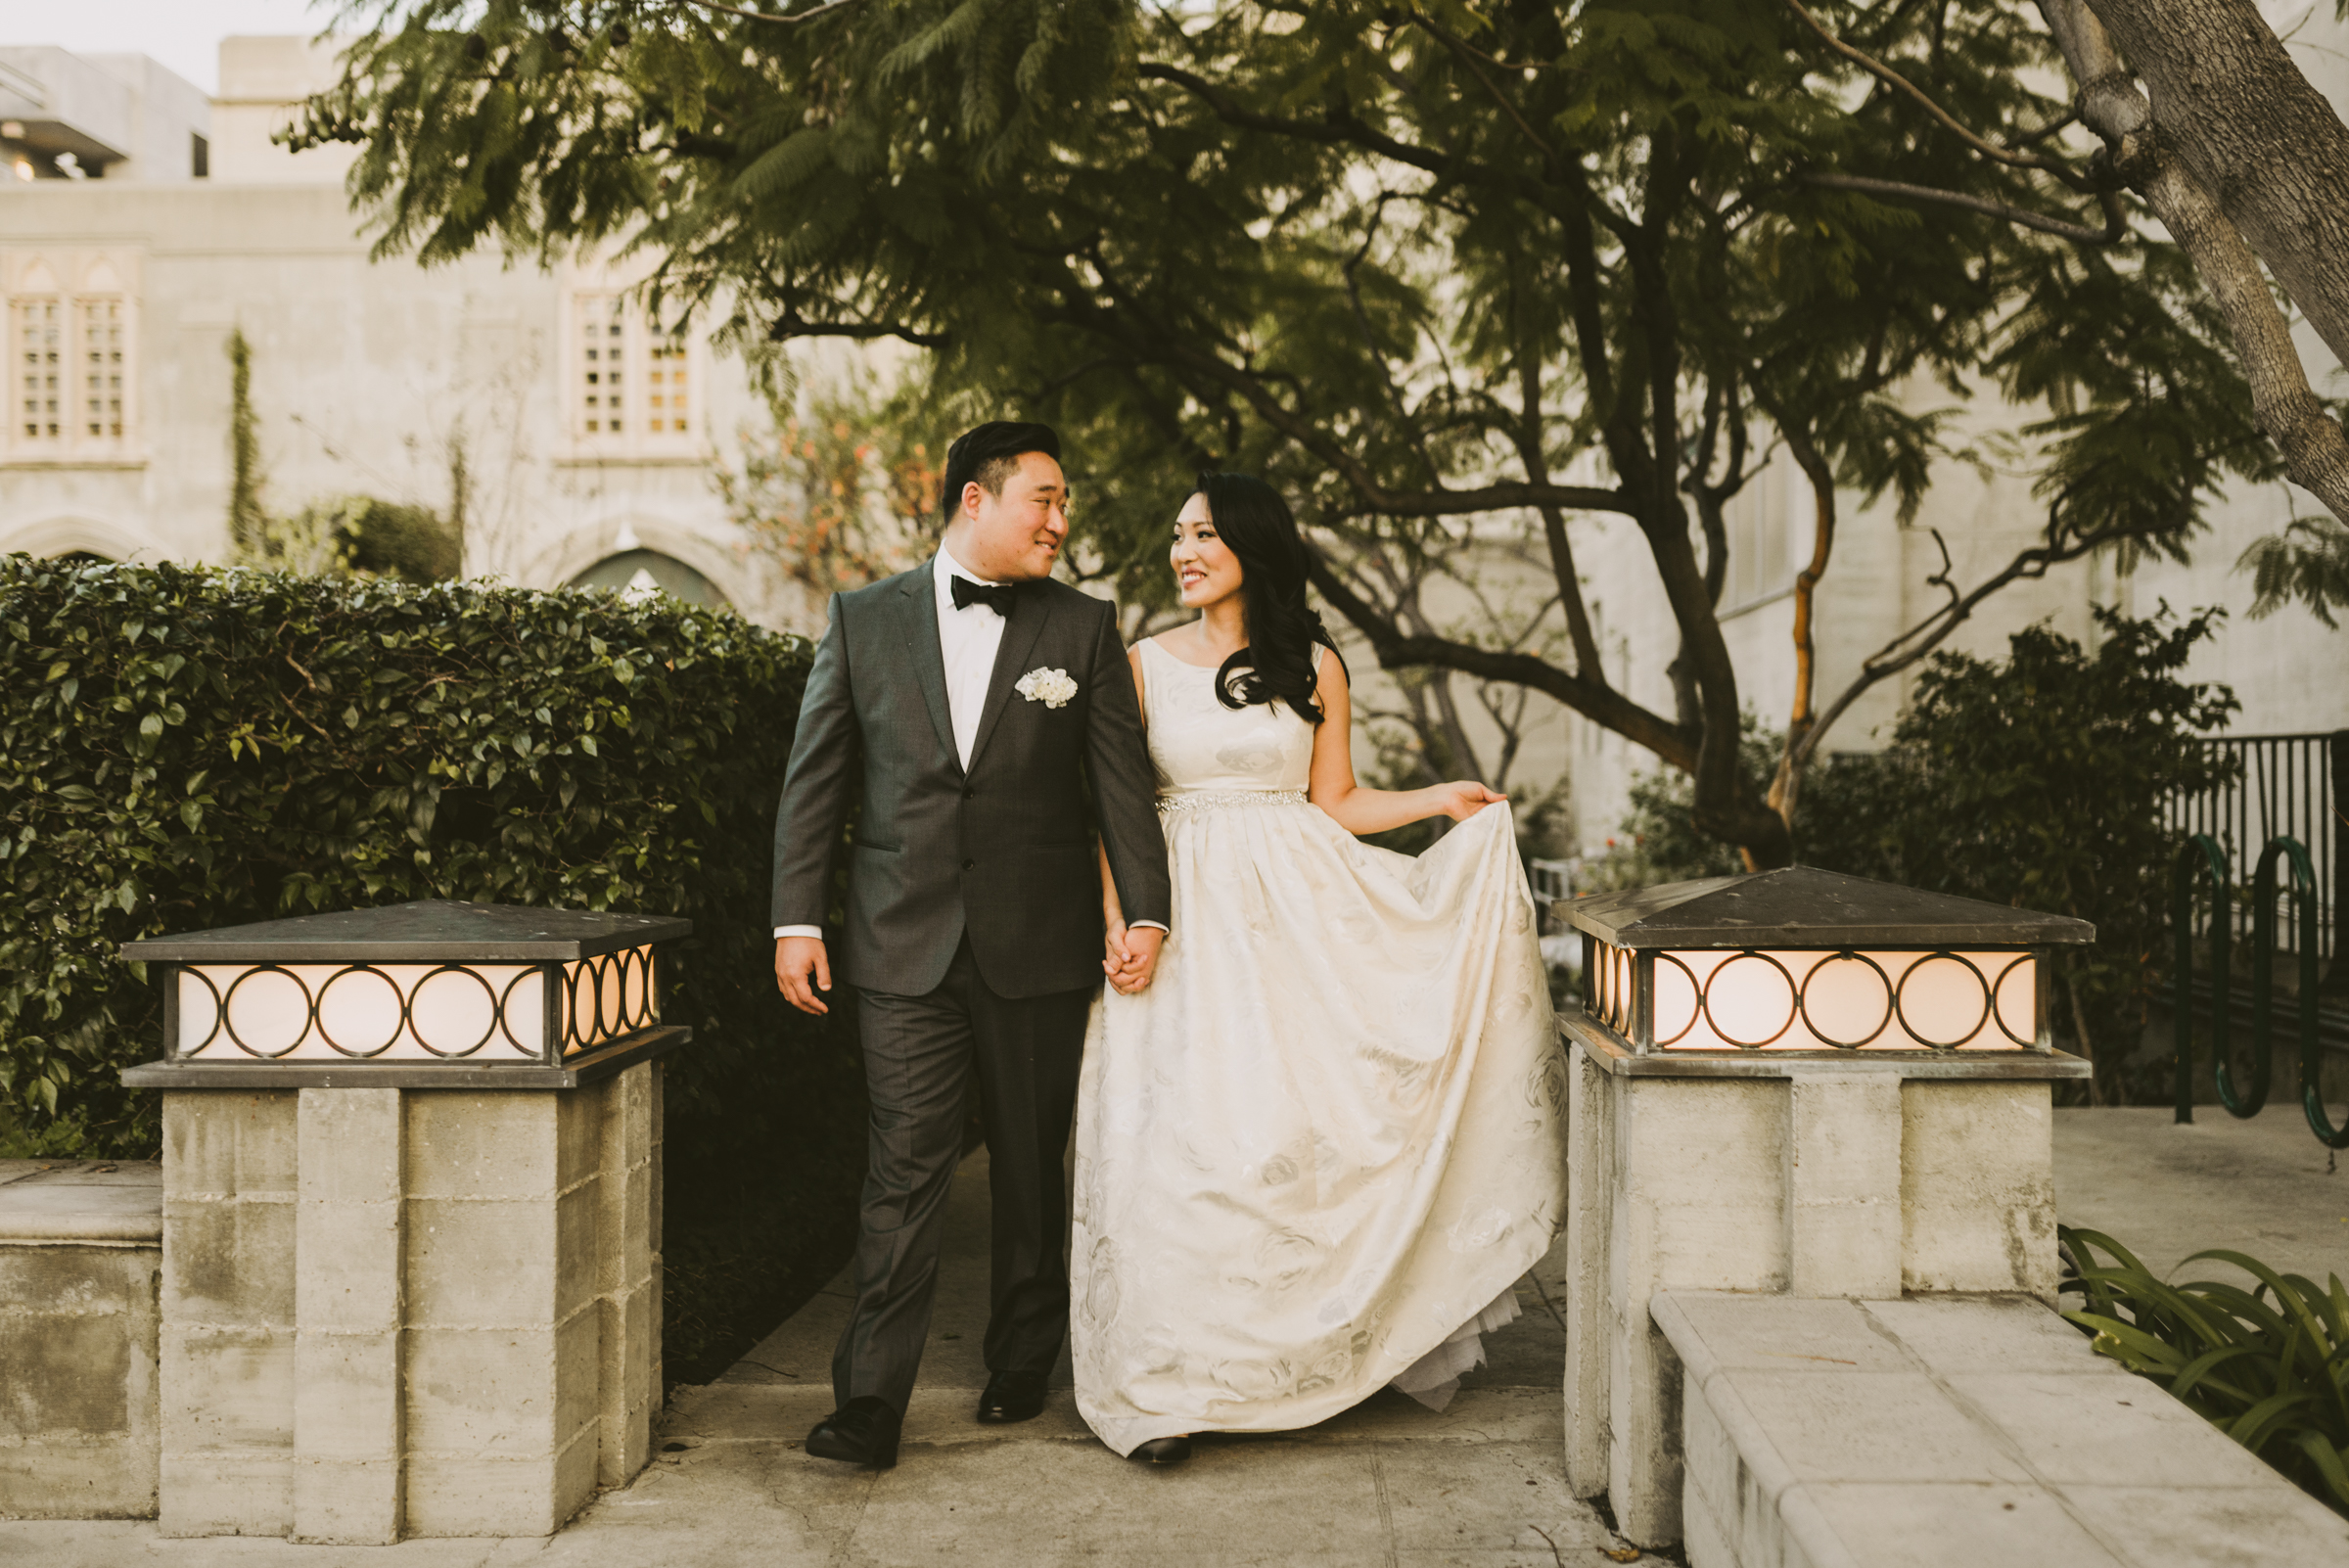 ©Isaiah + Taylor Photography - David + Grace - Wedding - 20170115 02869.jpg